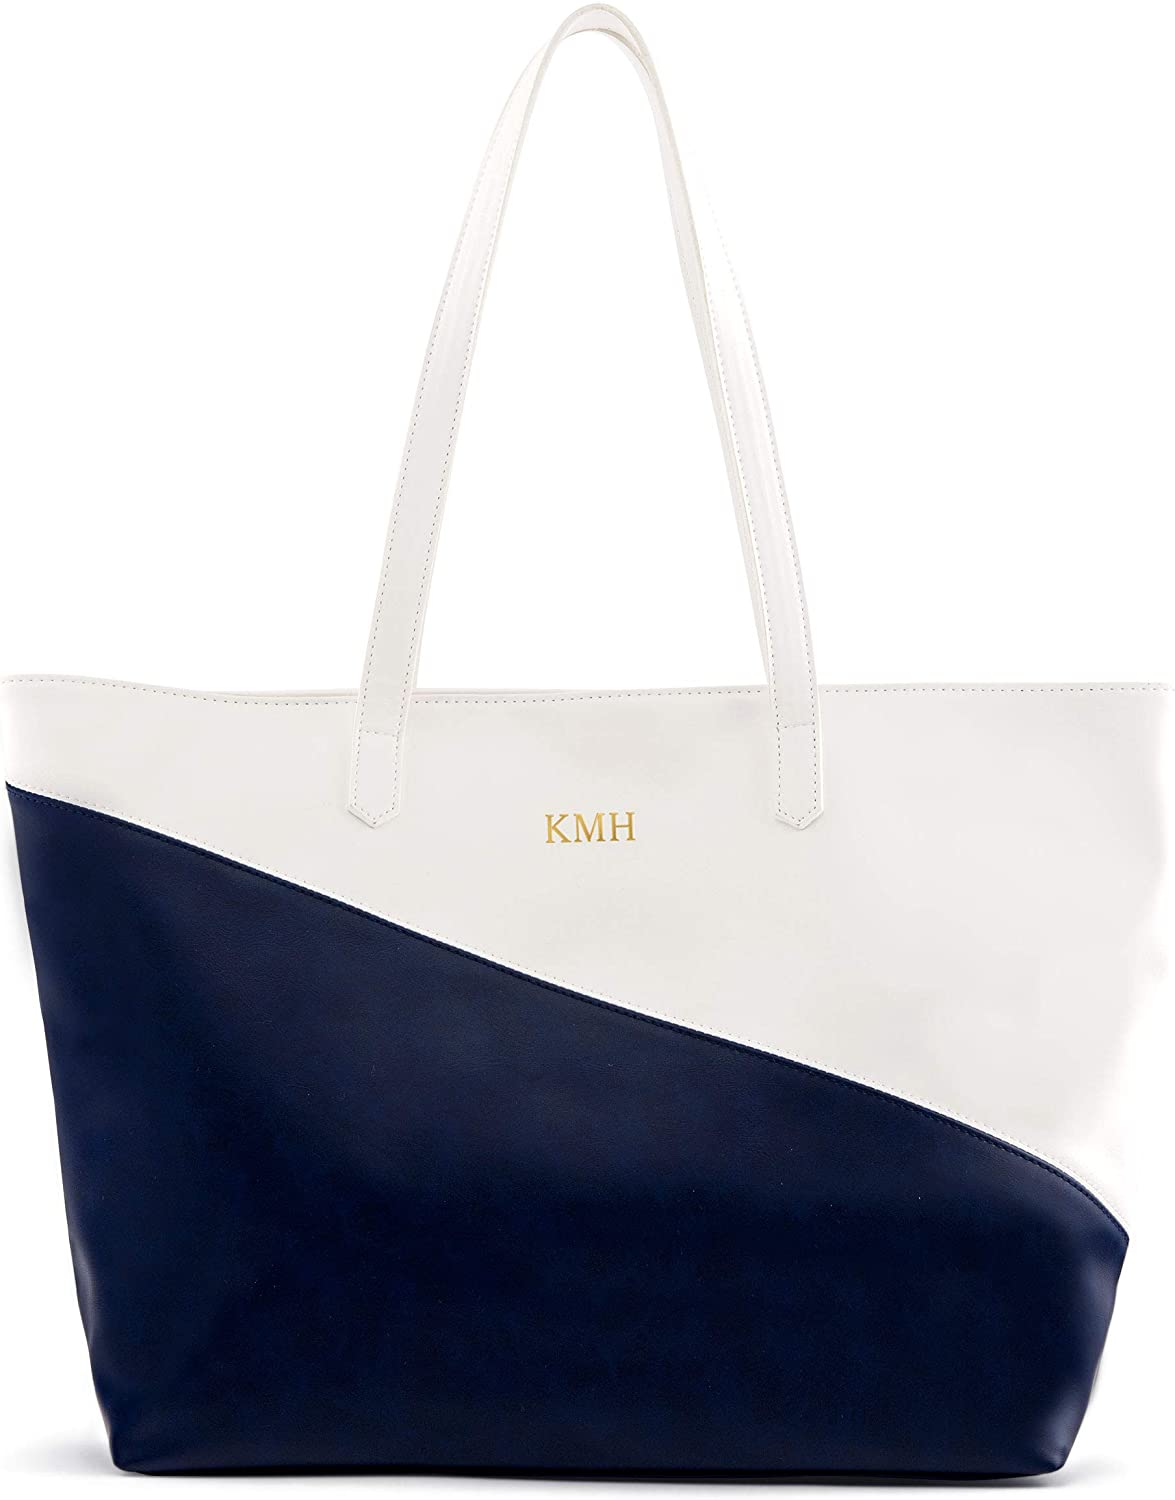 Weddingstar Large Personalized Color Block Faux Leather Tote Bag